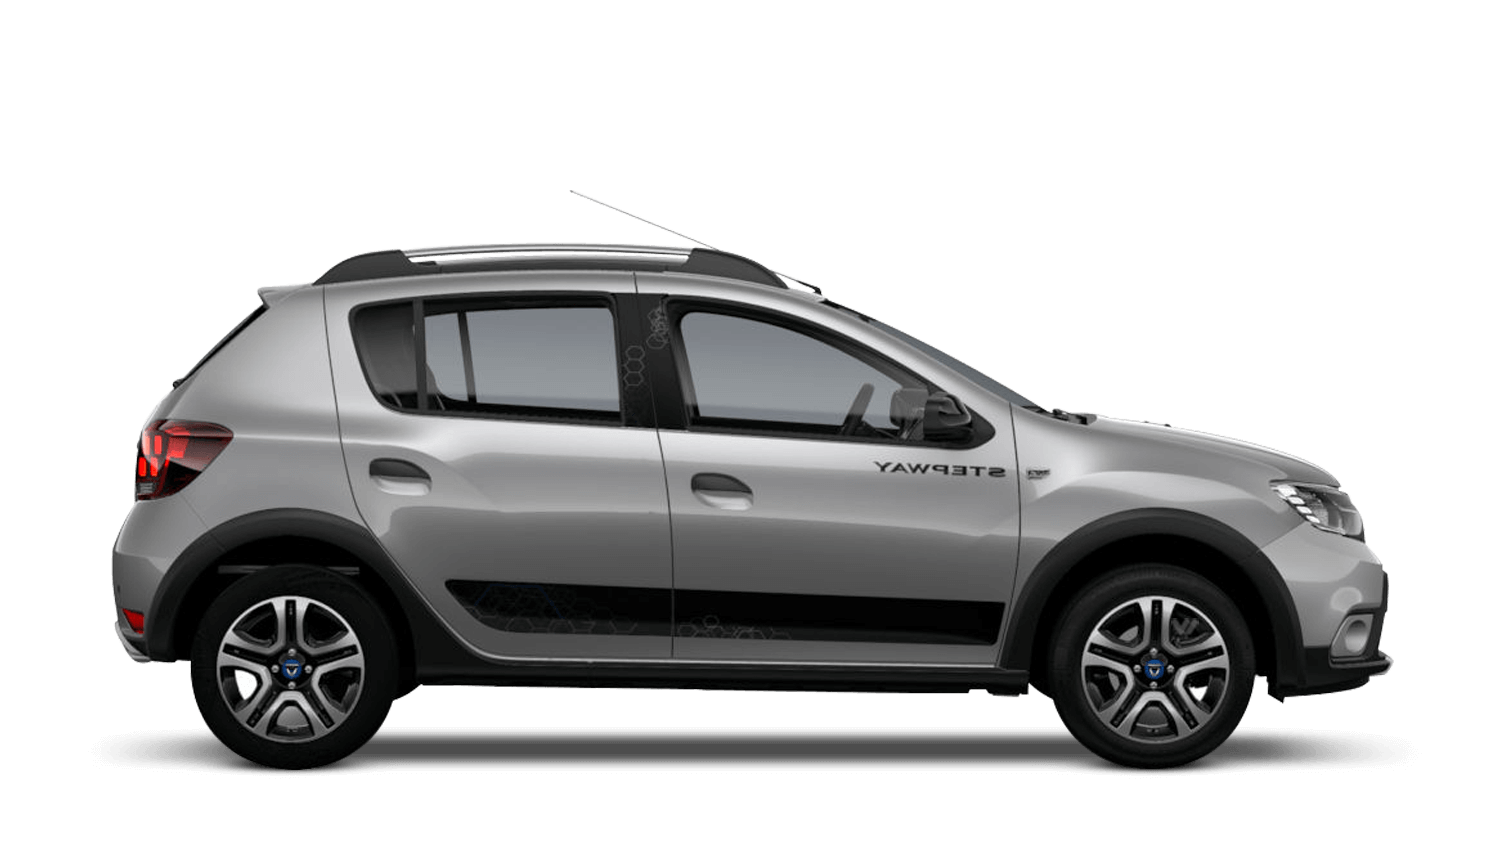 Highland Grey Dacia Sandero Stepway